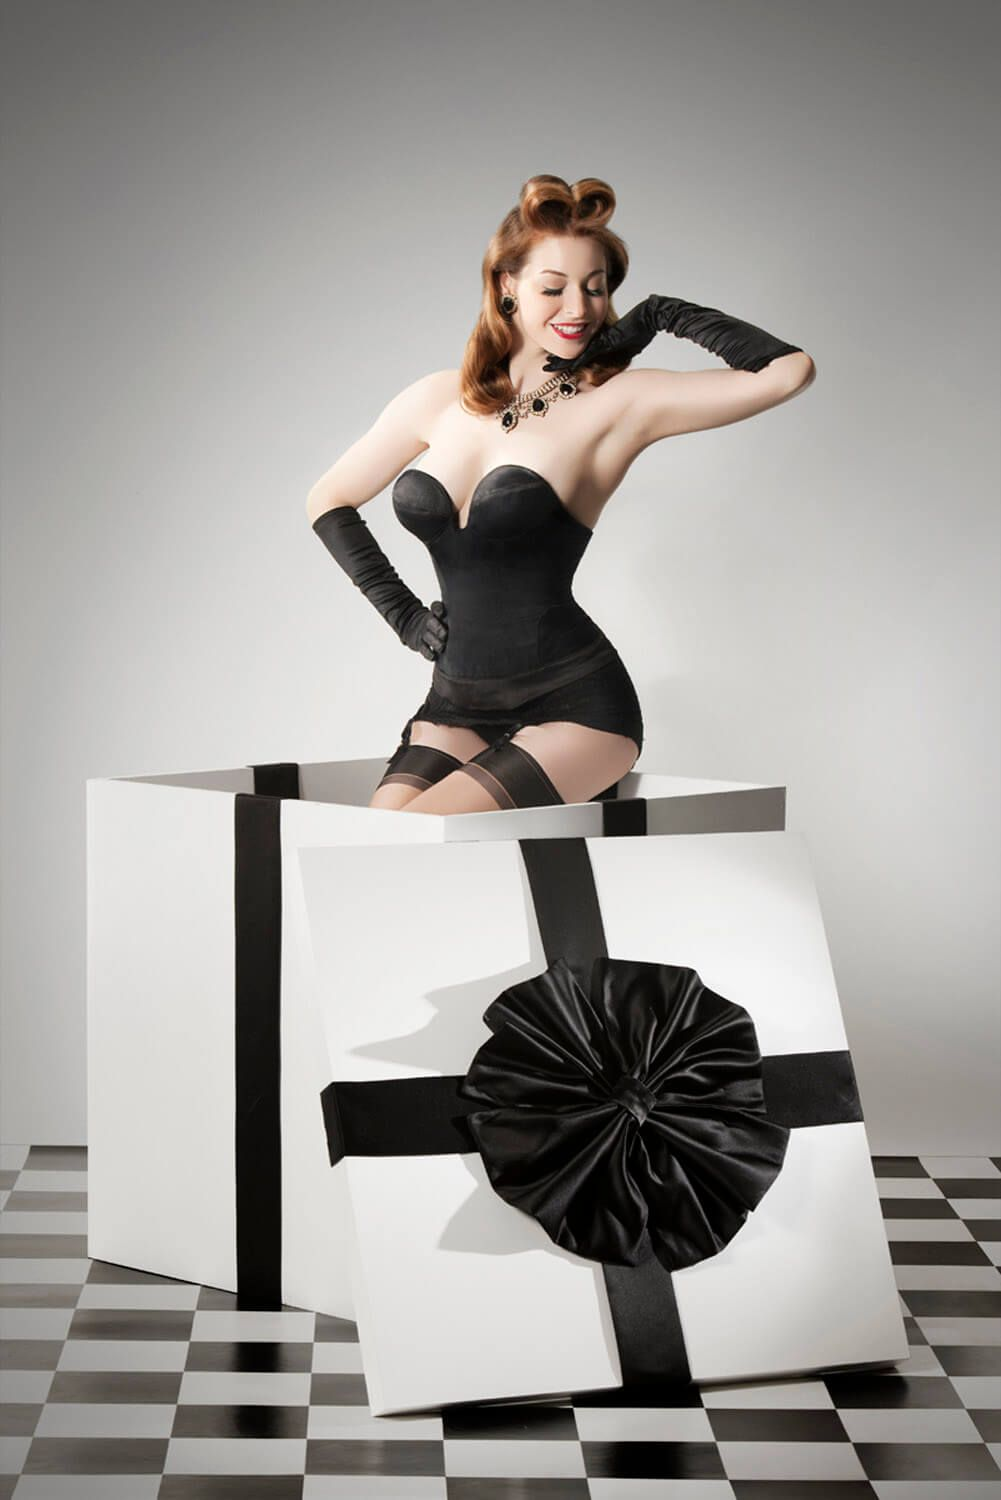 Pinup Present | Burlesque and Pinup Club | Pinterest